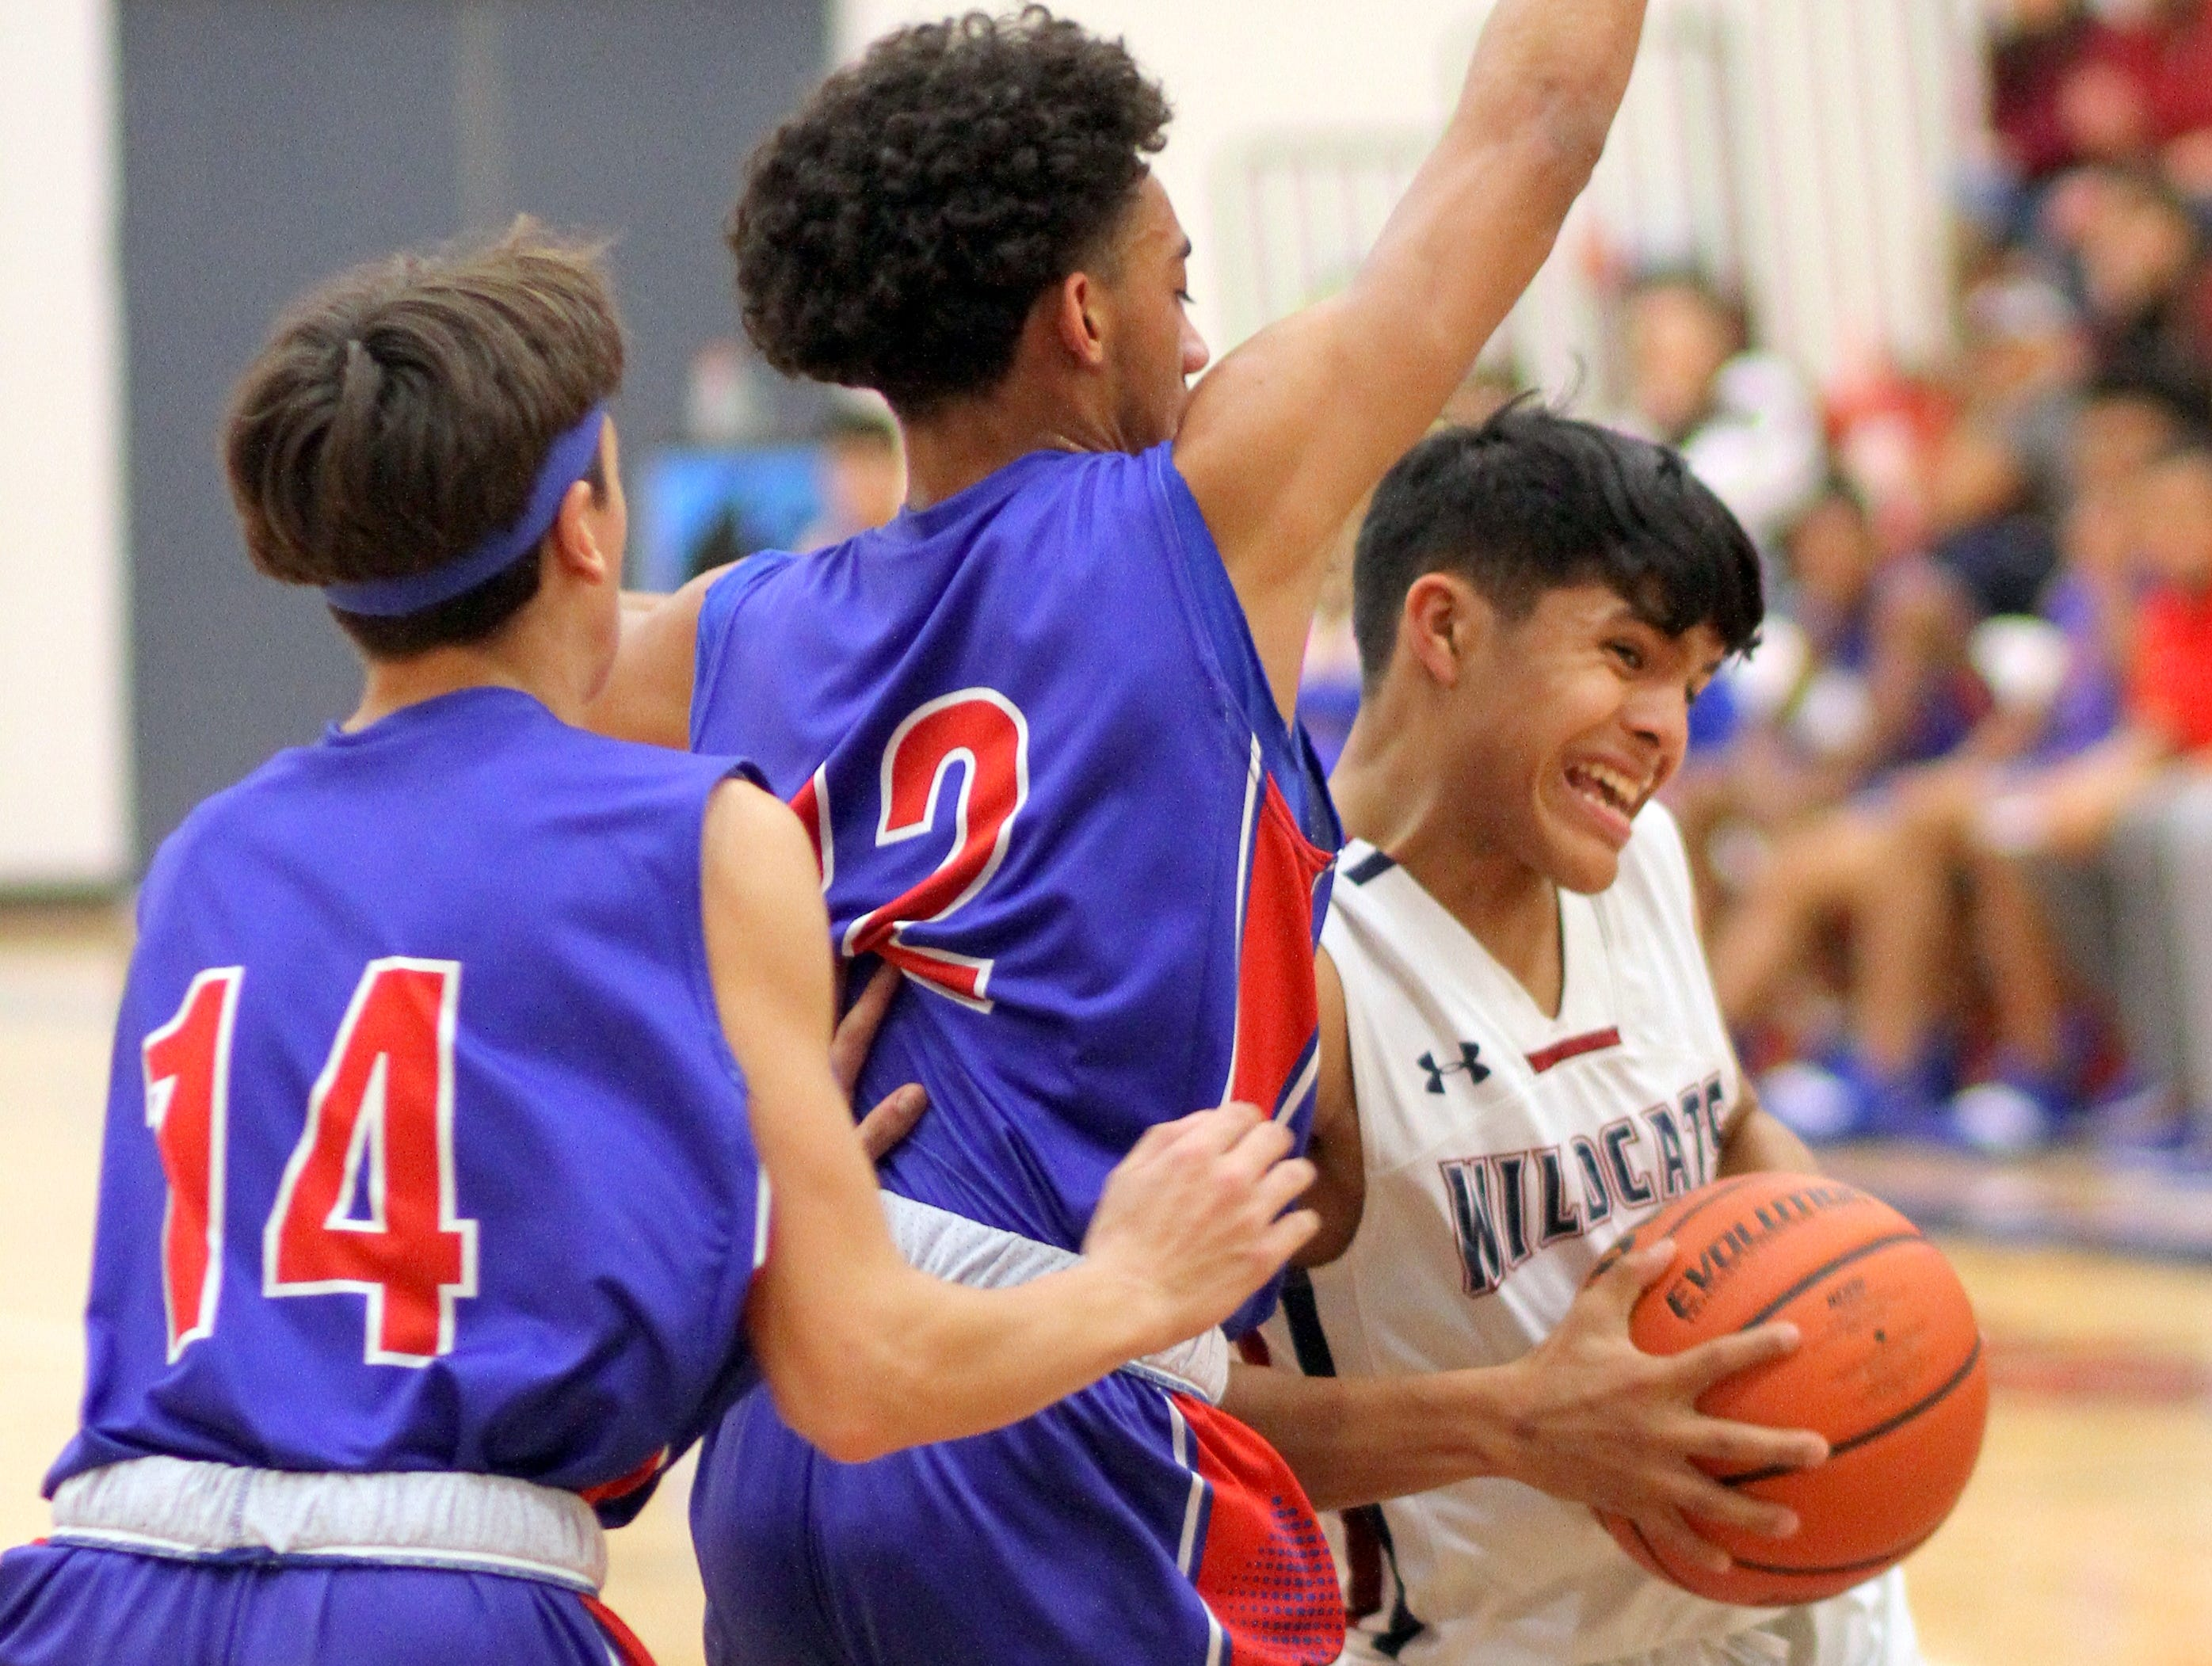 Wildcat guard Jordan Caballero bodied up to the Las Cruces High defense.